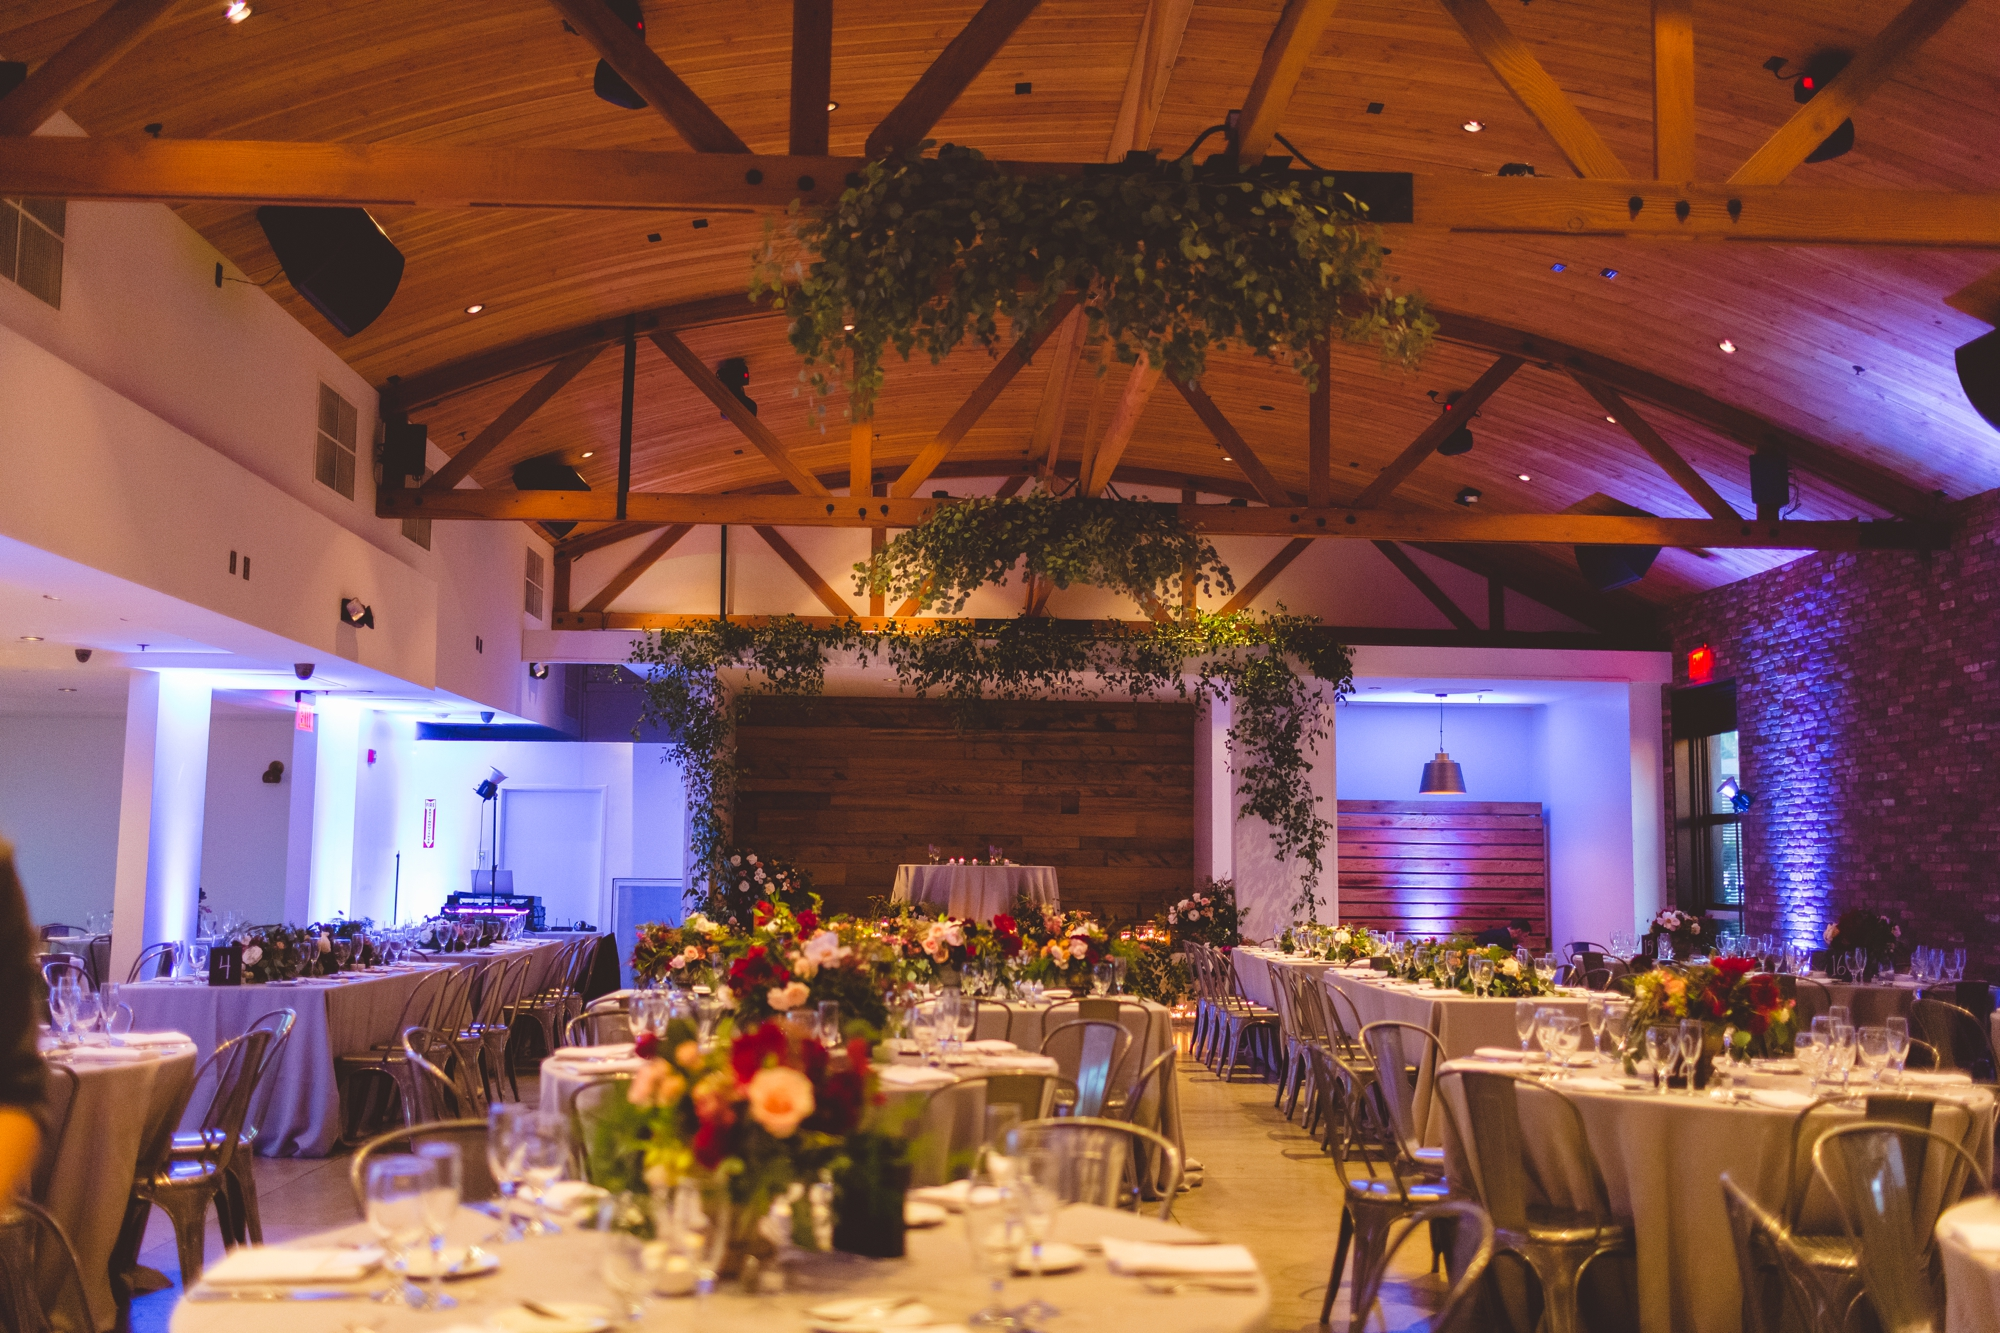 Norred S Weddings And Events: Orange County Wedding At The Colony House